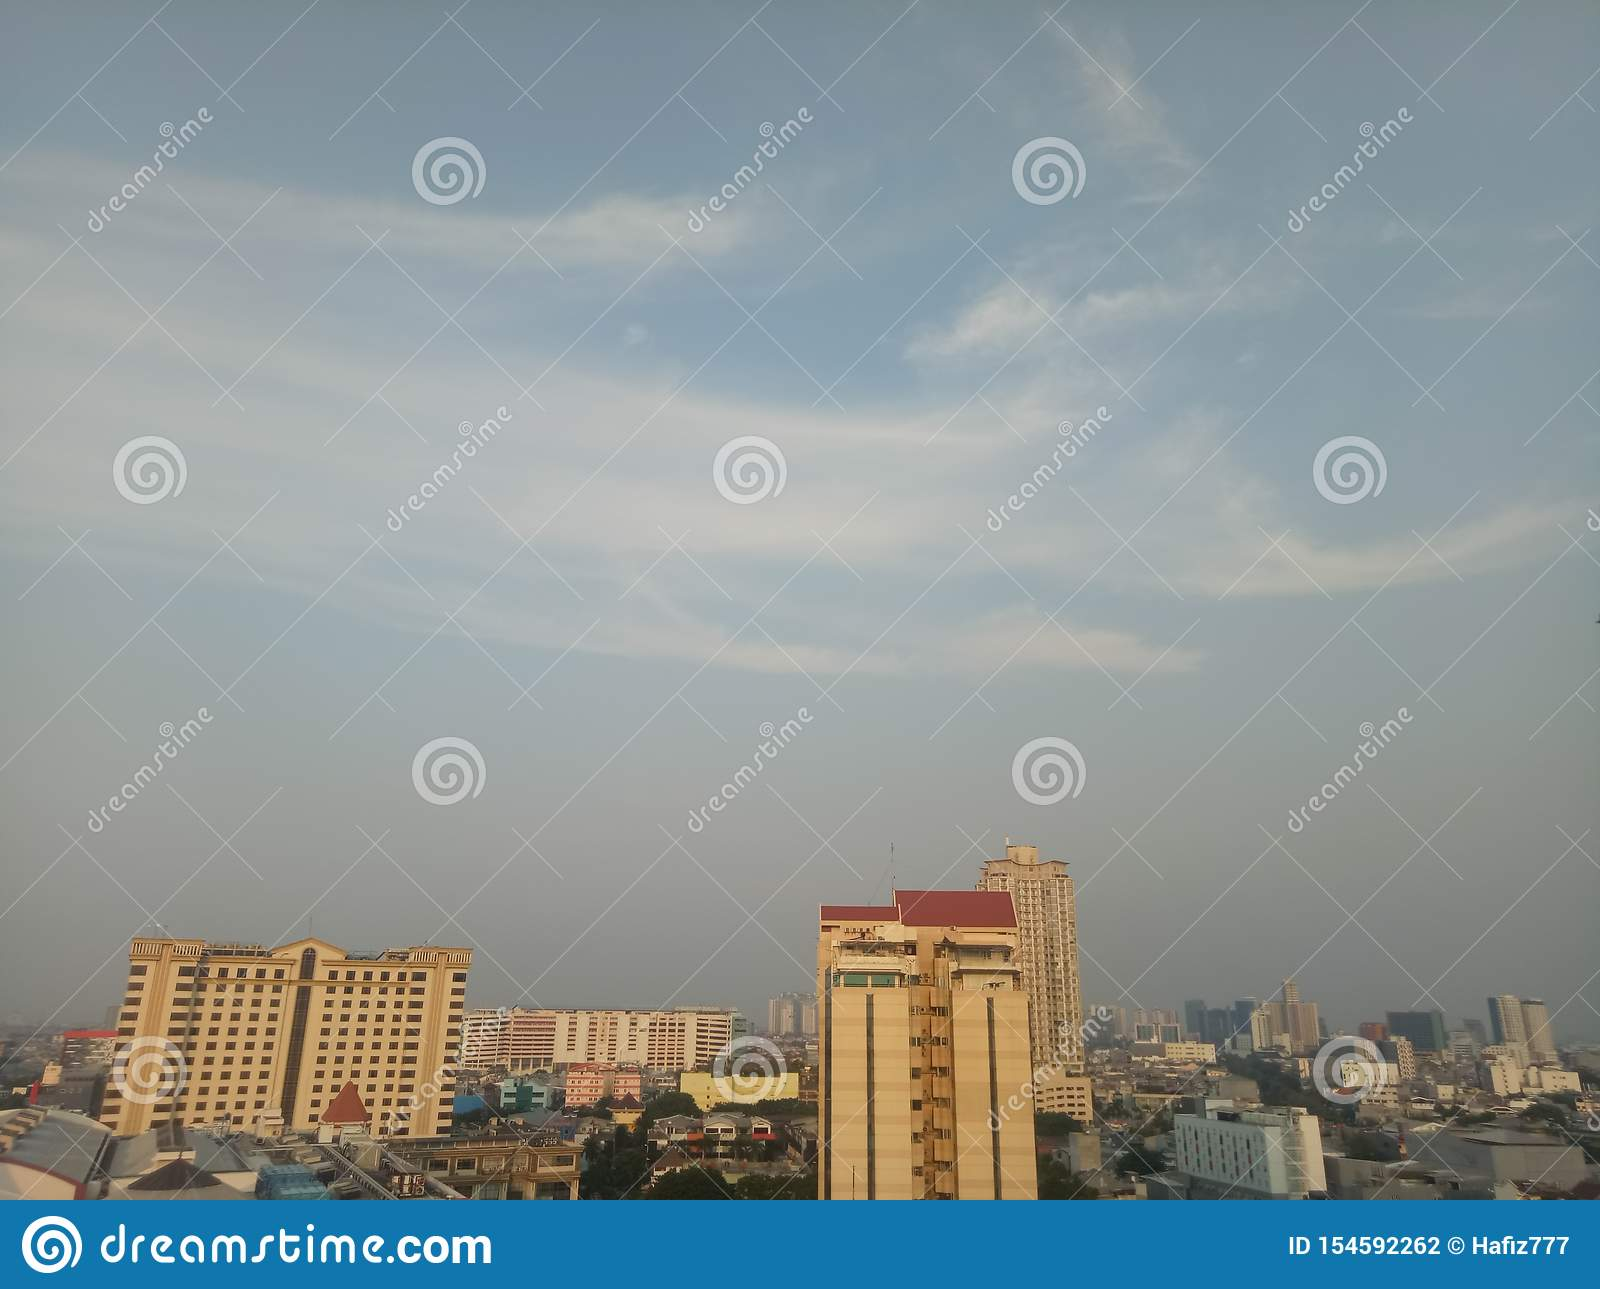 The sky jakarta are.... Building, outdoor and hotel